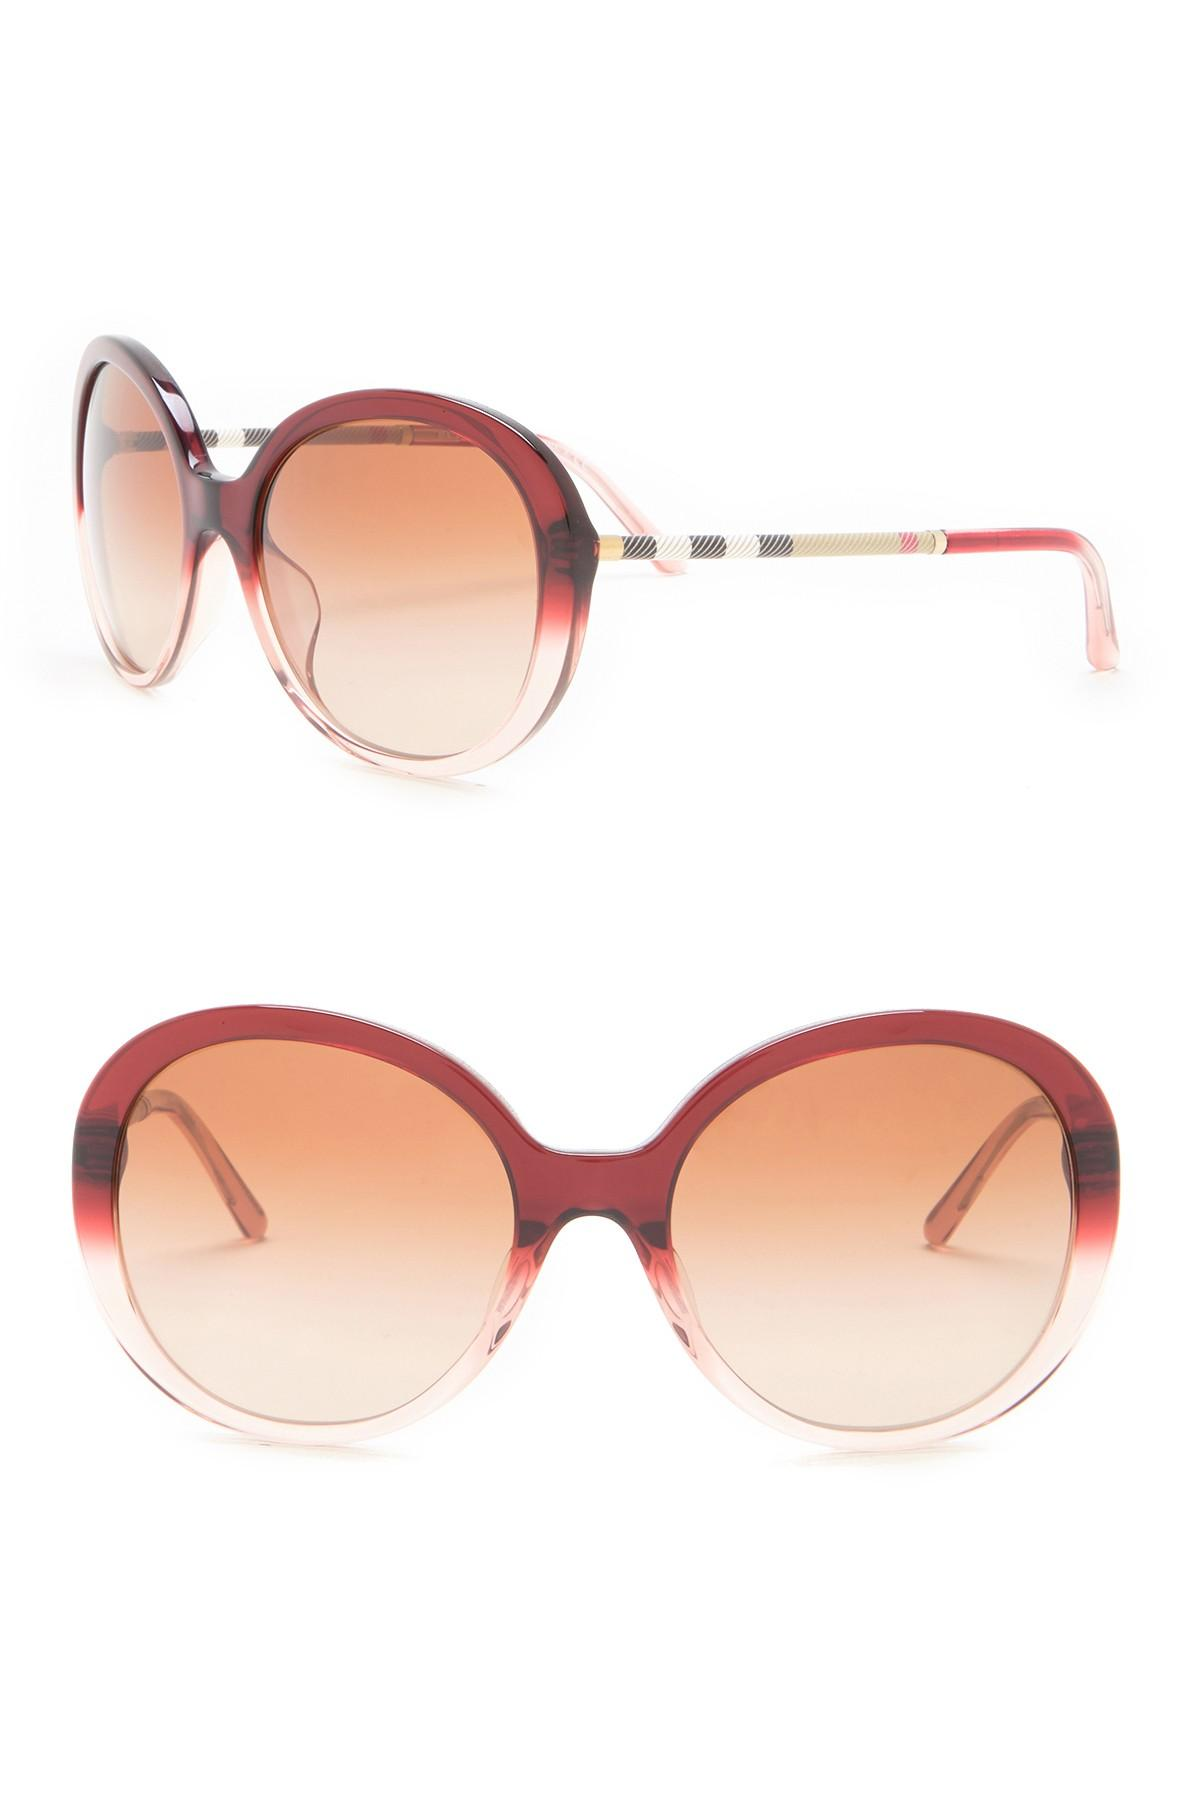 5c05d9866ef2 Lyst - Burberry Women s Heritage Check 57mm Sunglasses